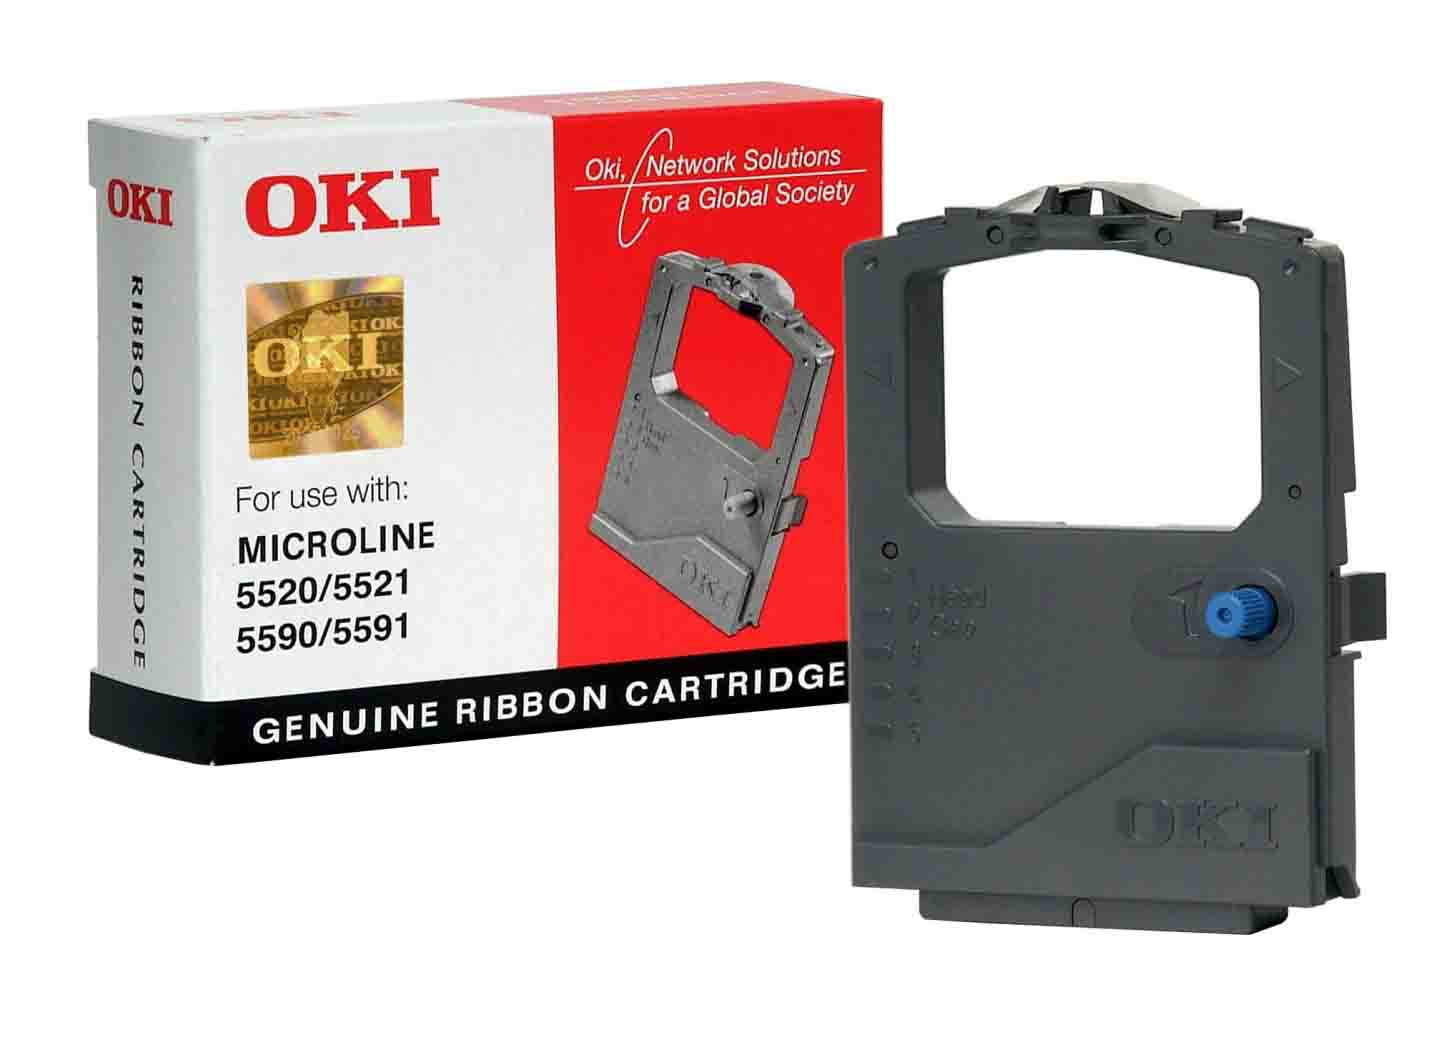 Genuine OKI Microline Black 1126301 Nylon Ink Ribbon (01126301 Fax Printer Cartridge)